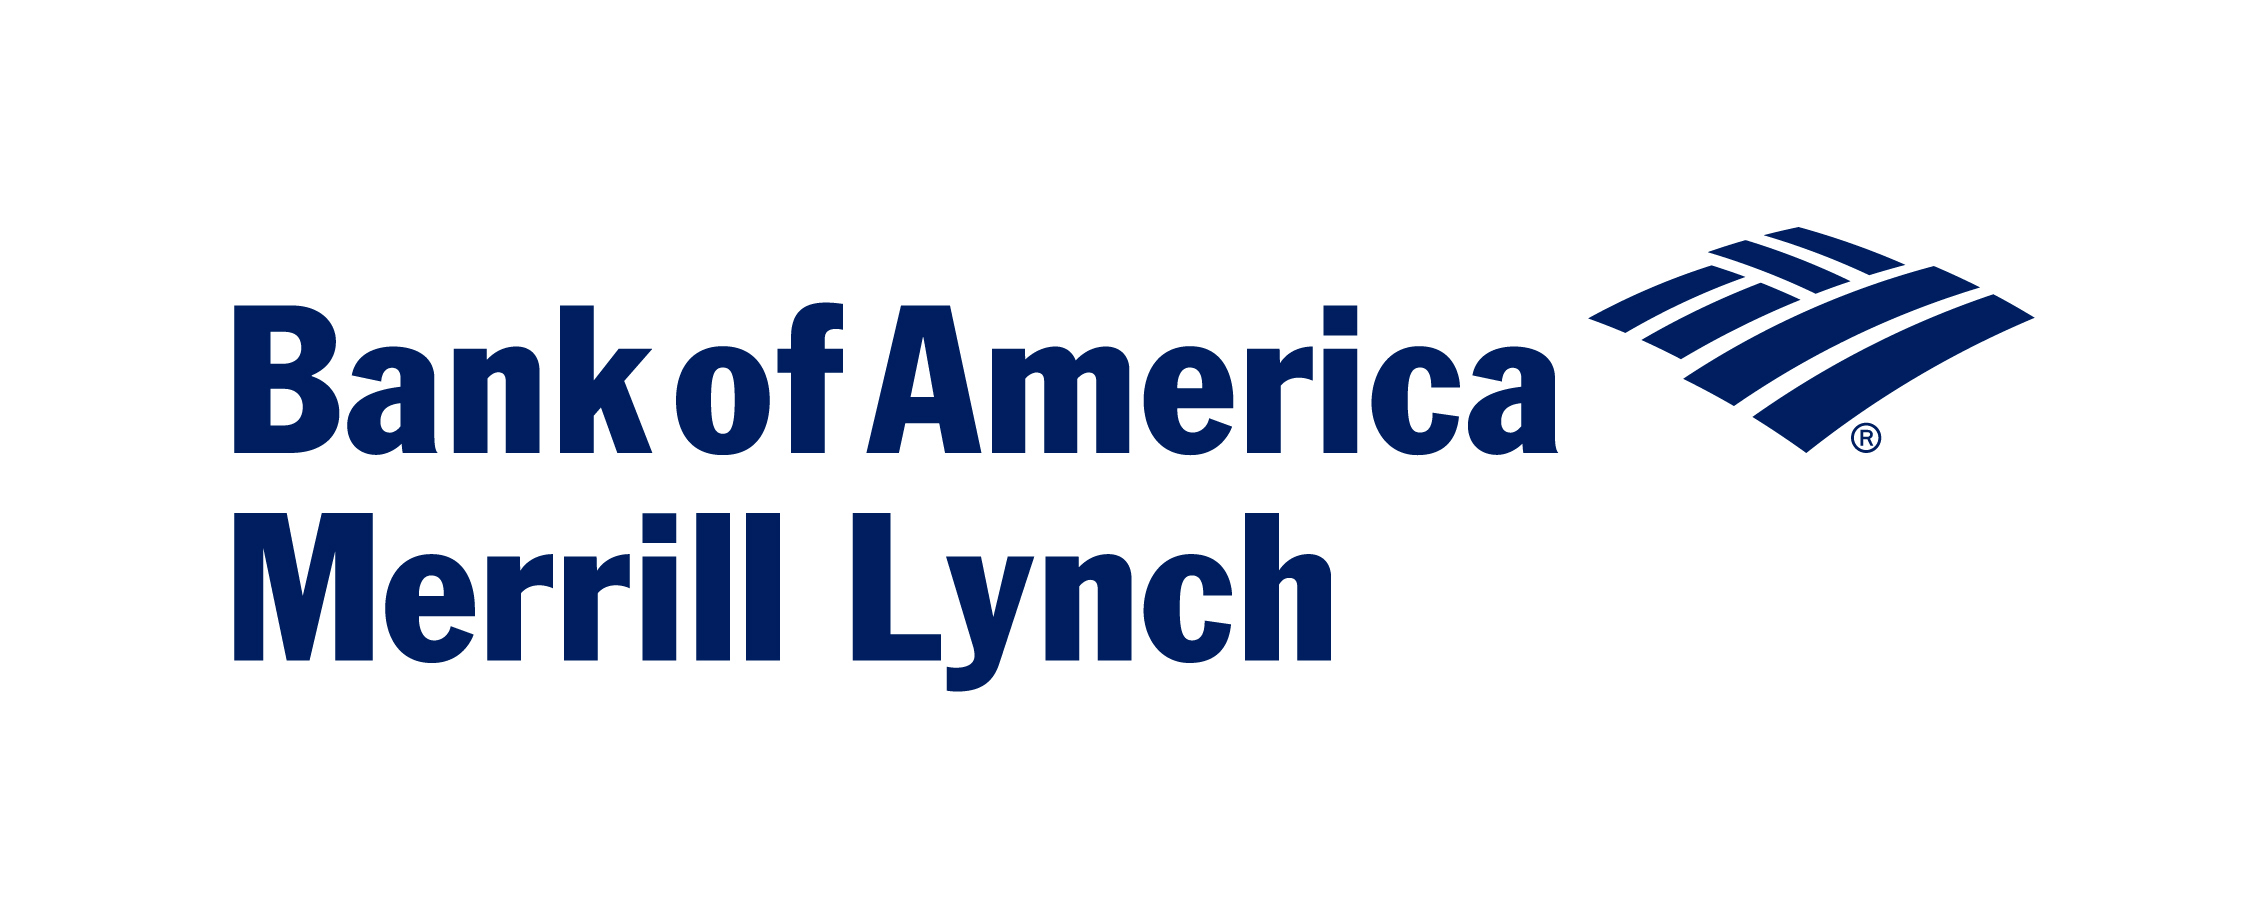 Bank of America Merrill Lynch's logo